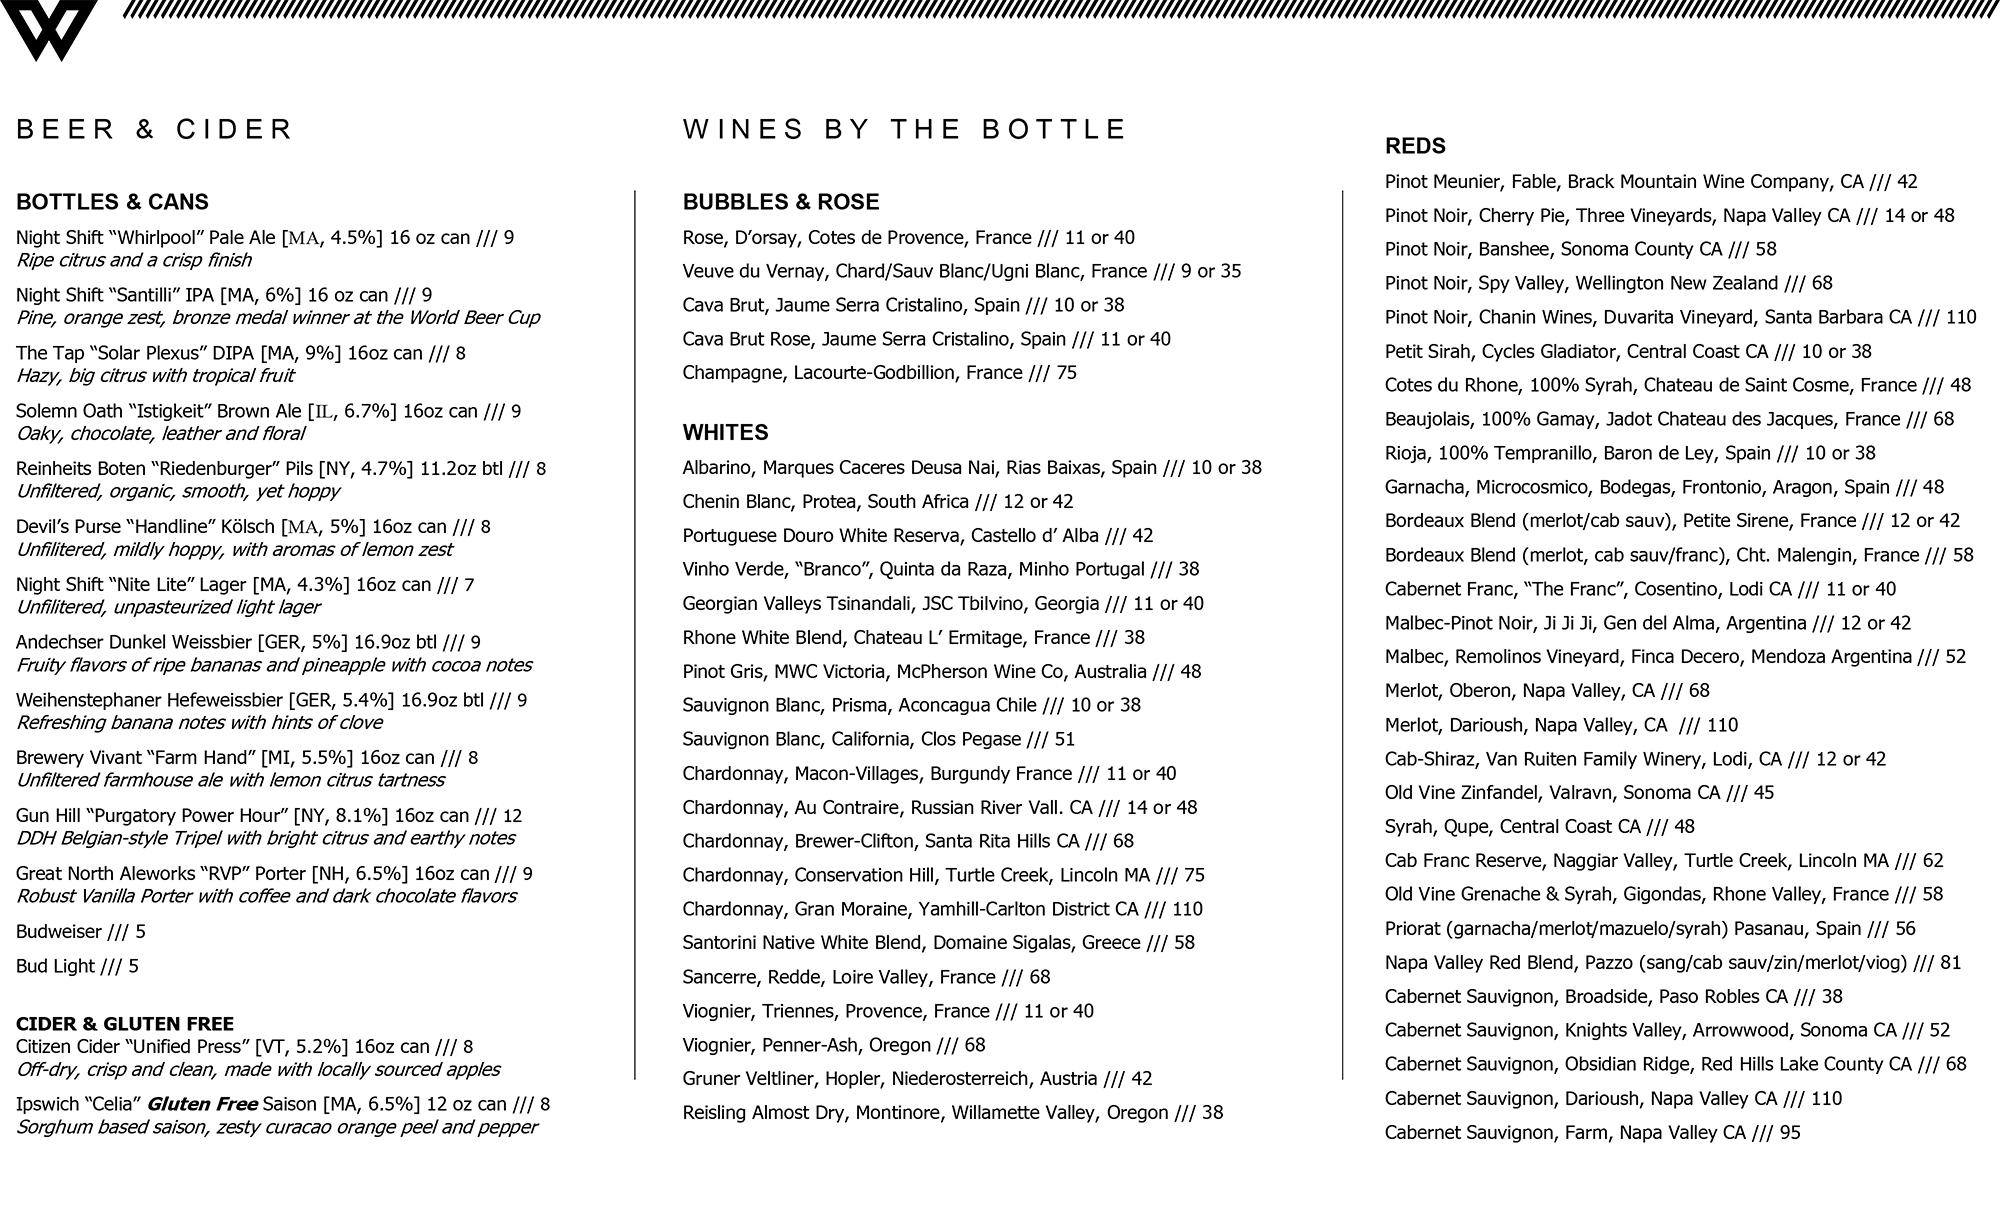 The Wellington bottled beer and cider list